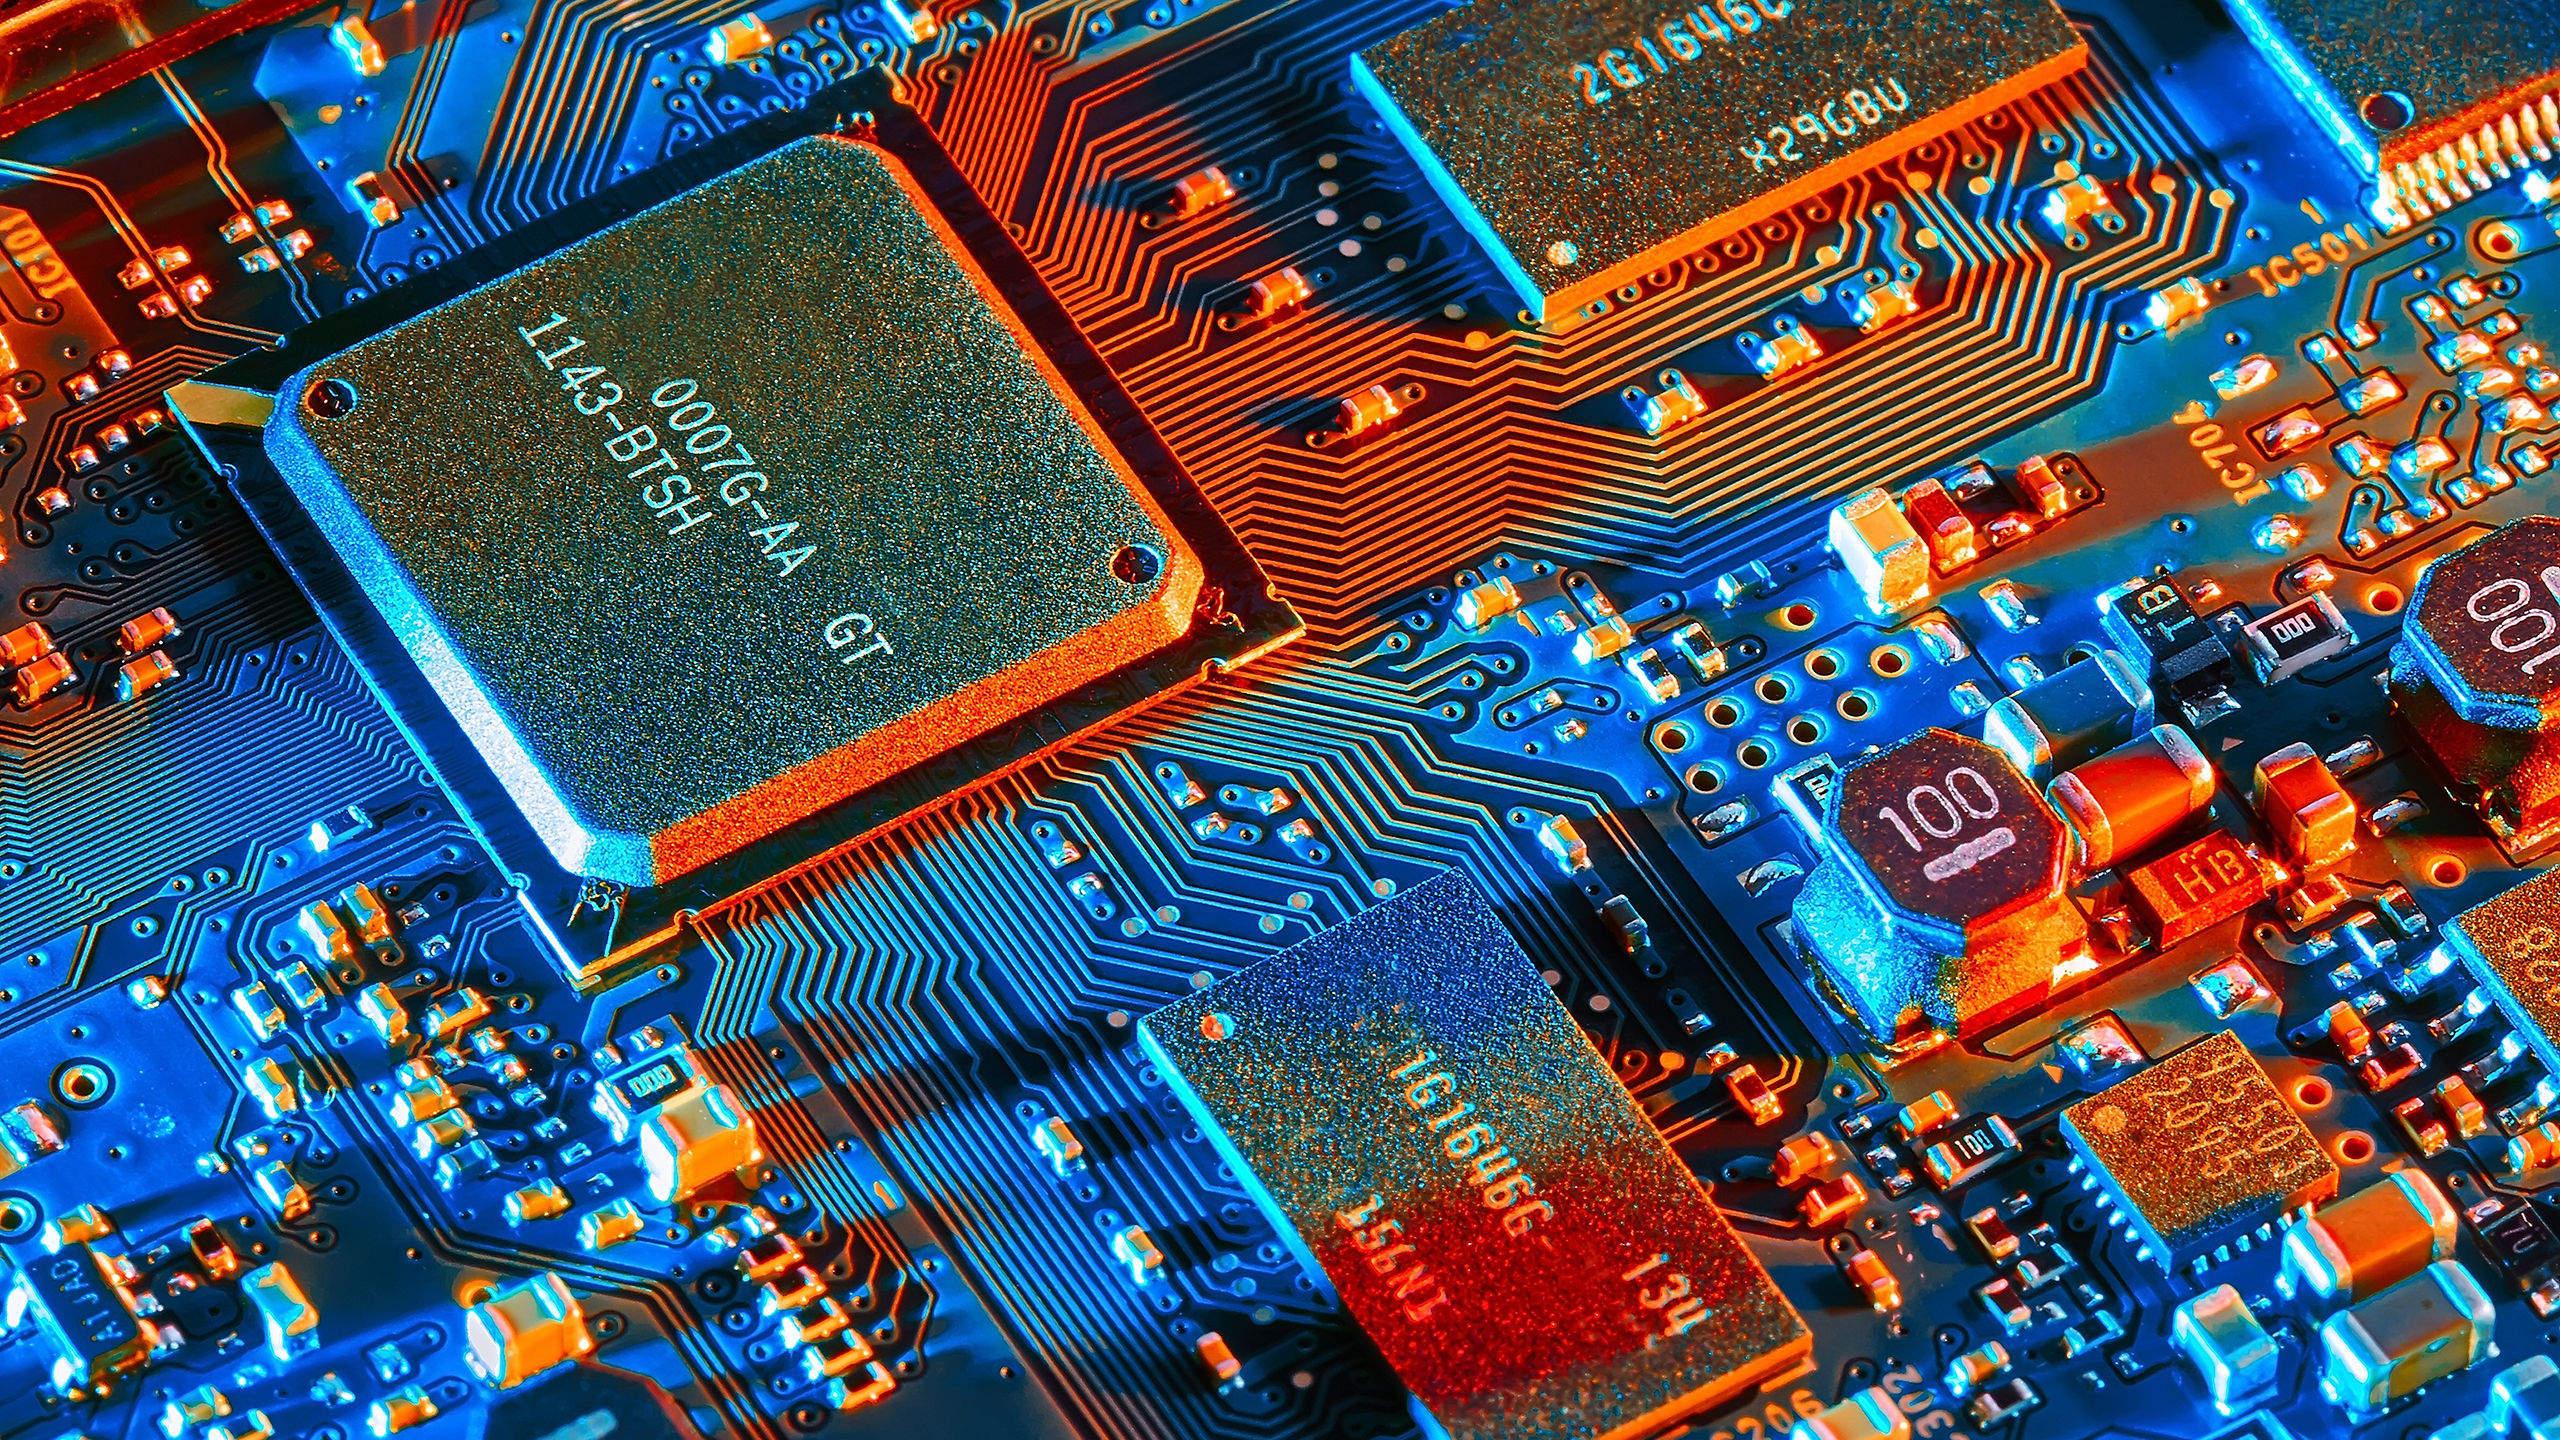 Circuit Boards Integrated Circuits Technology Chips 2560x1440